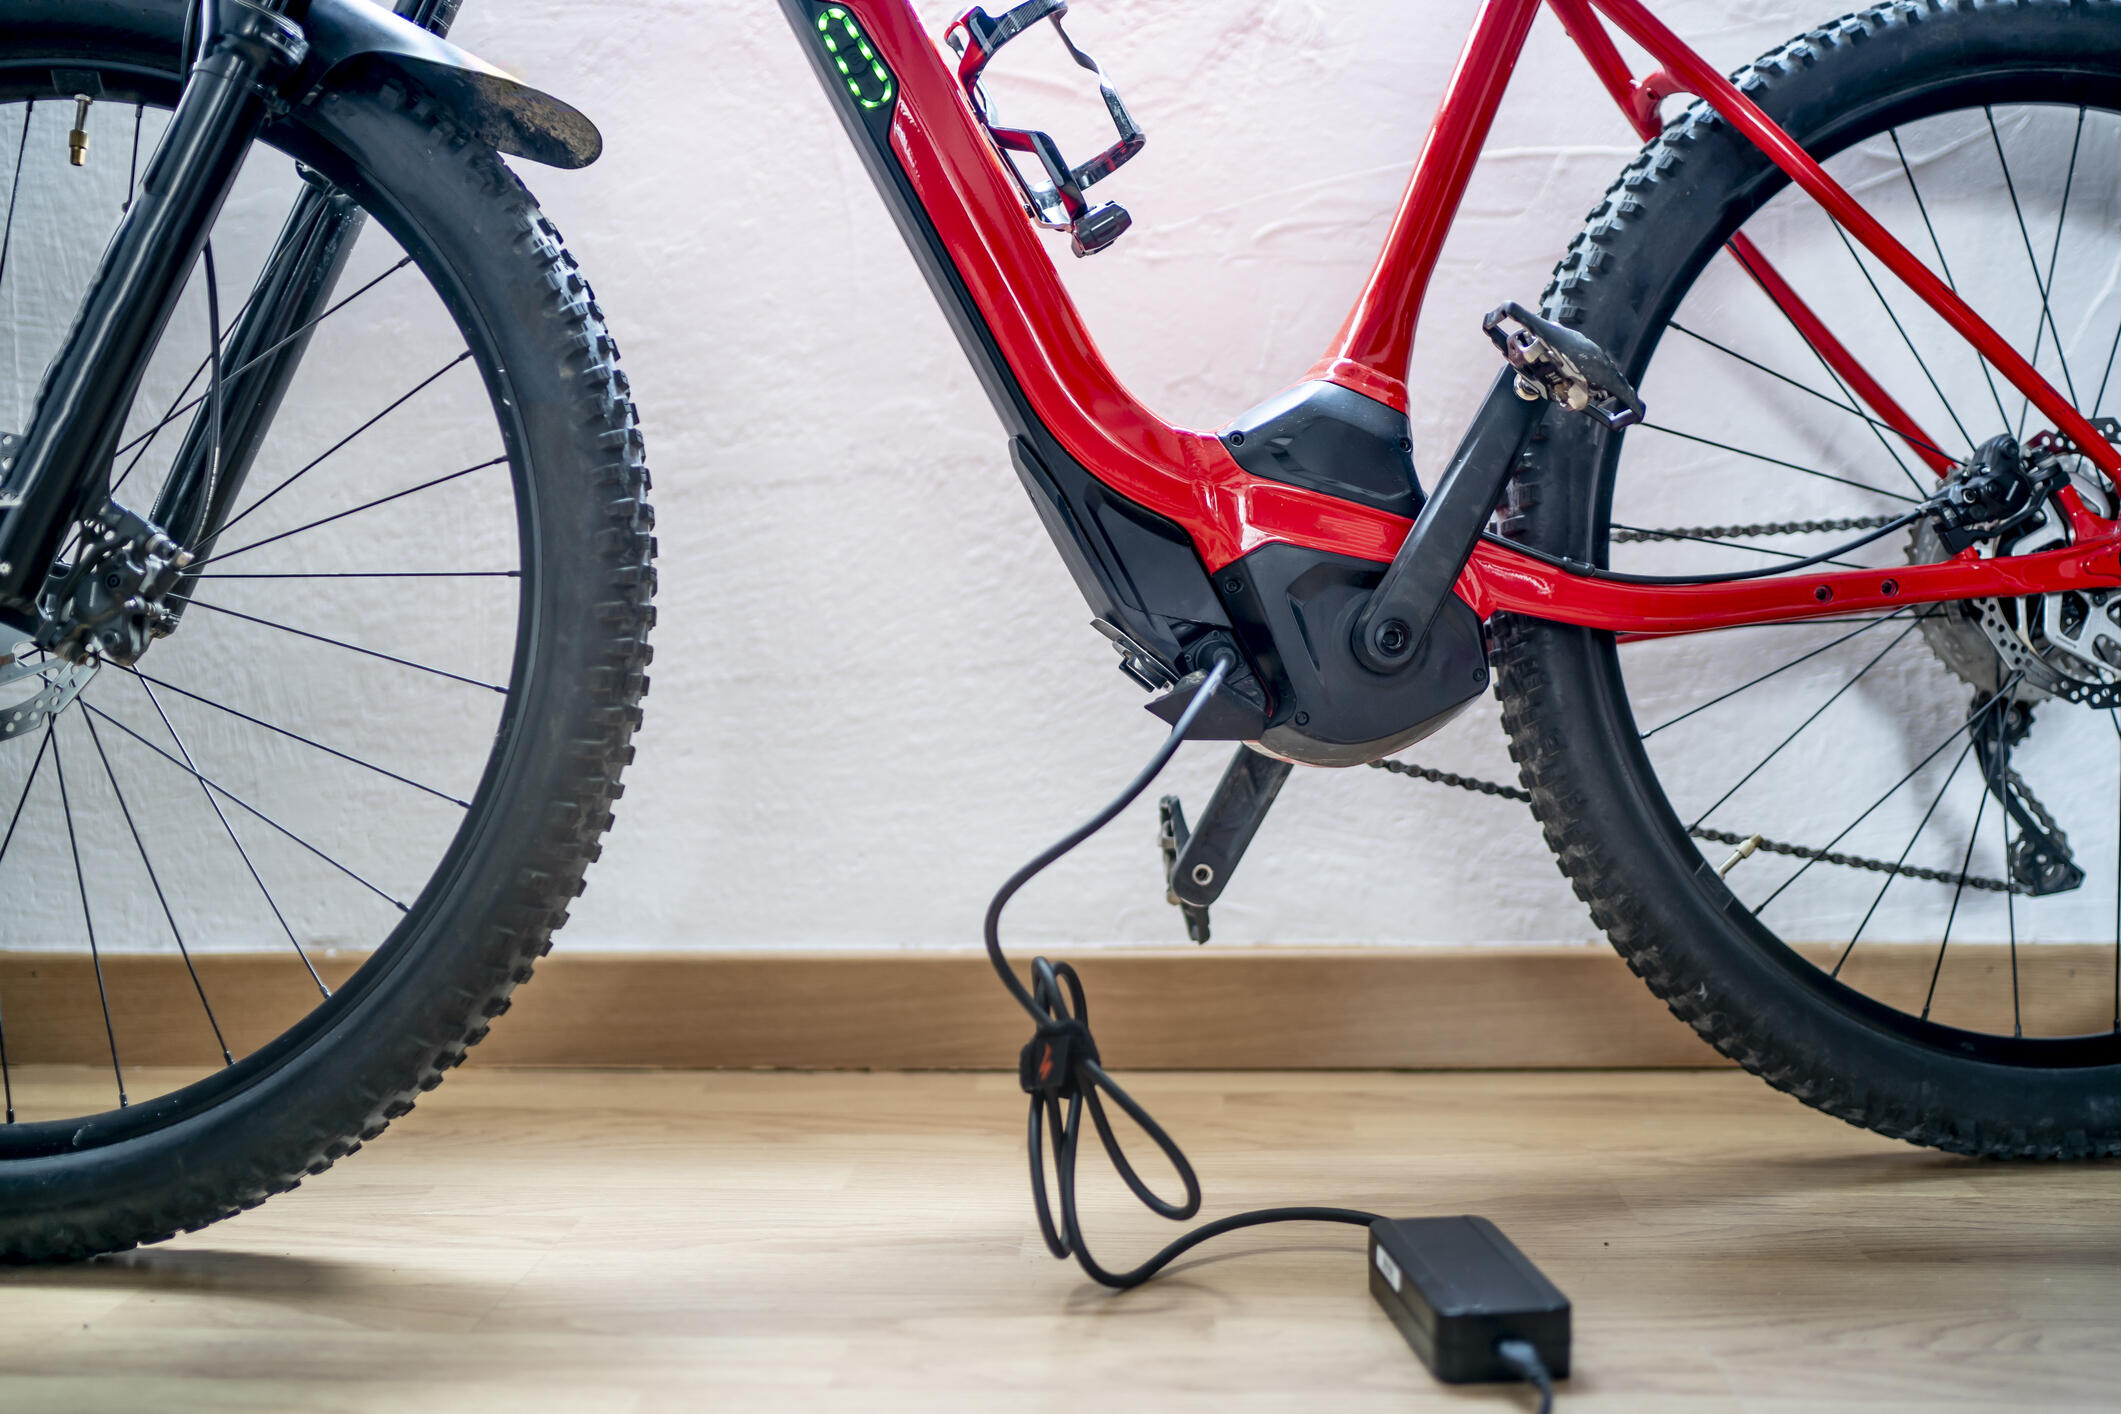 Close-up of the frame of a red e-bike connected to a charger